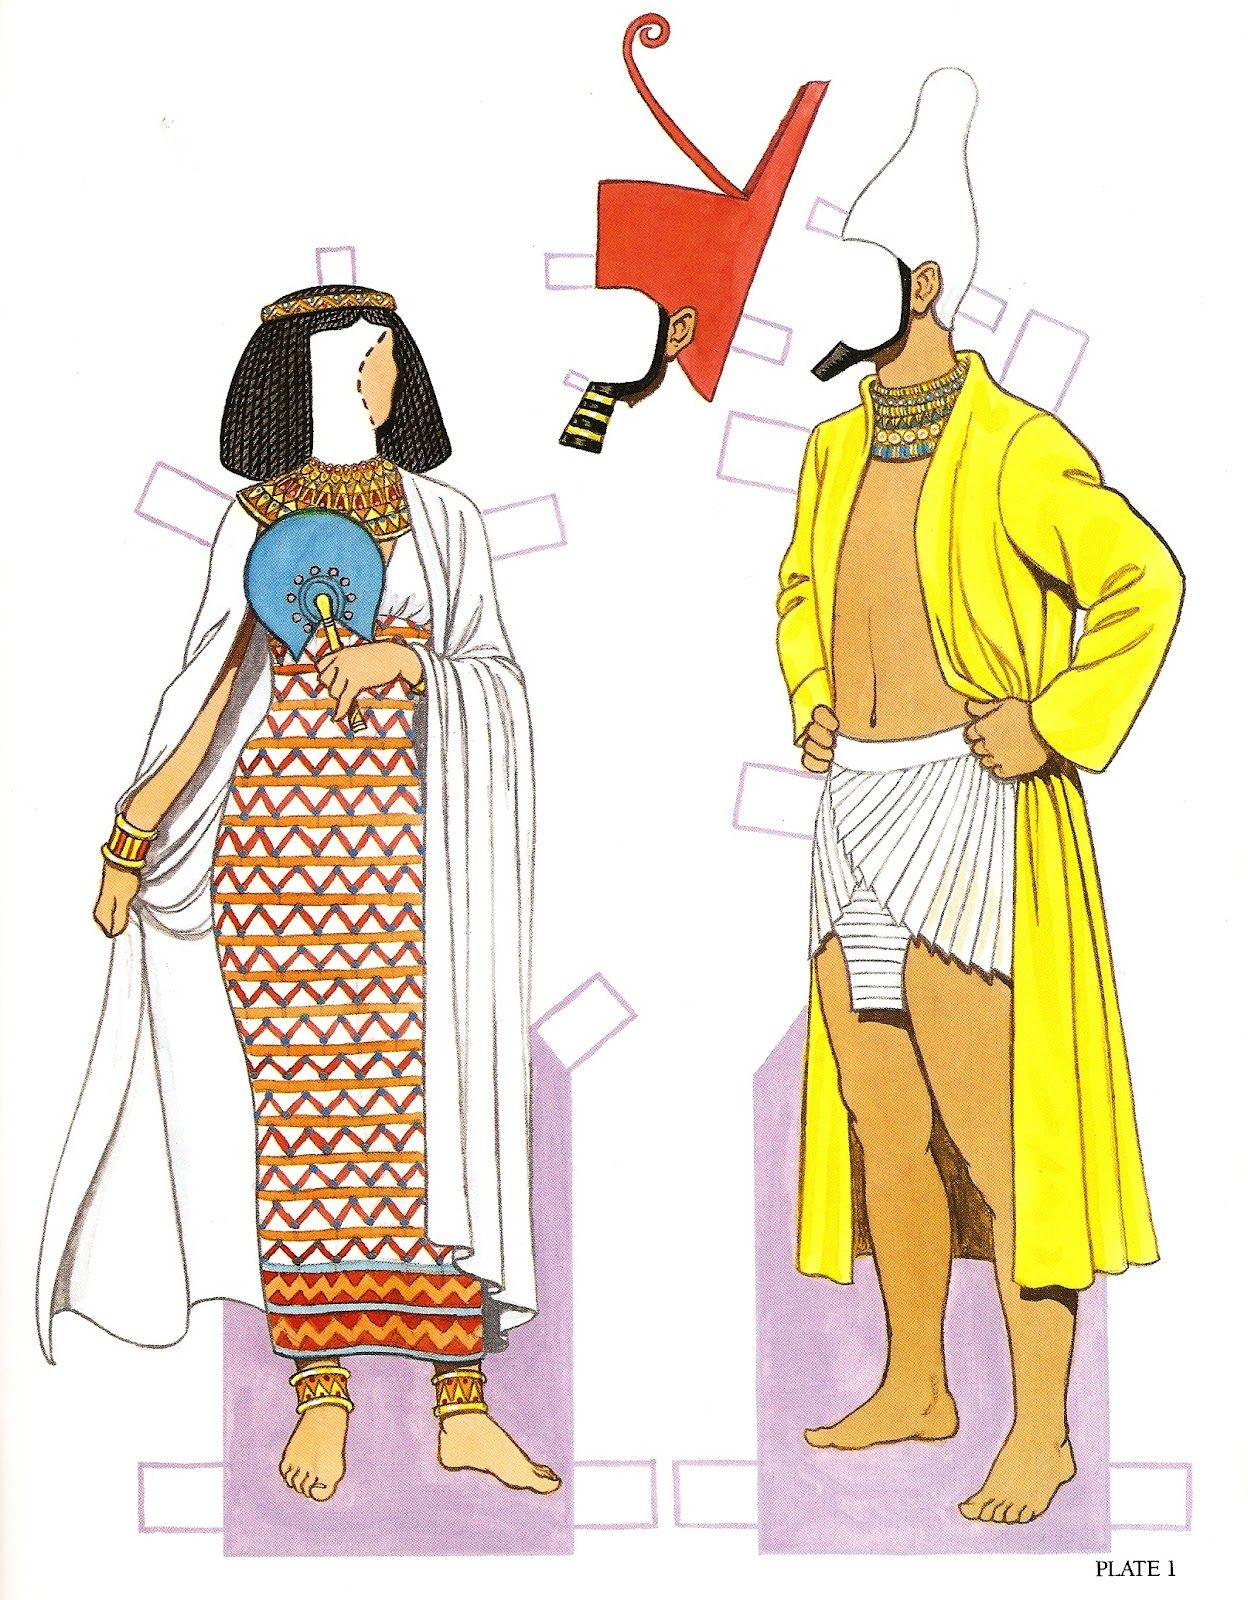 Tom tierney colonial fashions paper dolls - Ancient Egyptian Costumes Paper Dolls History Of Costume Series Tom Tierney